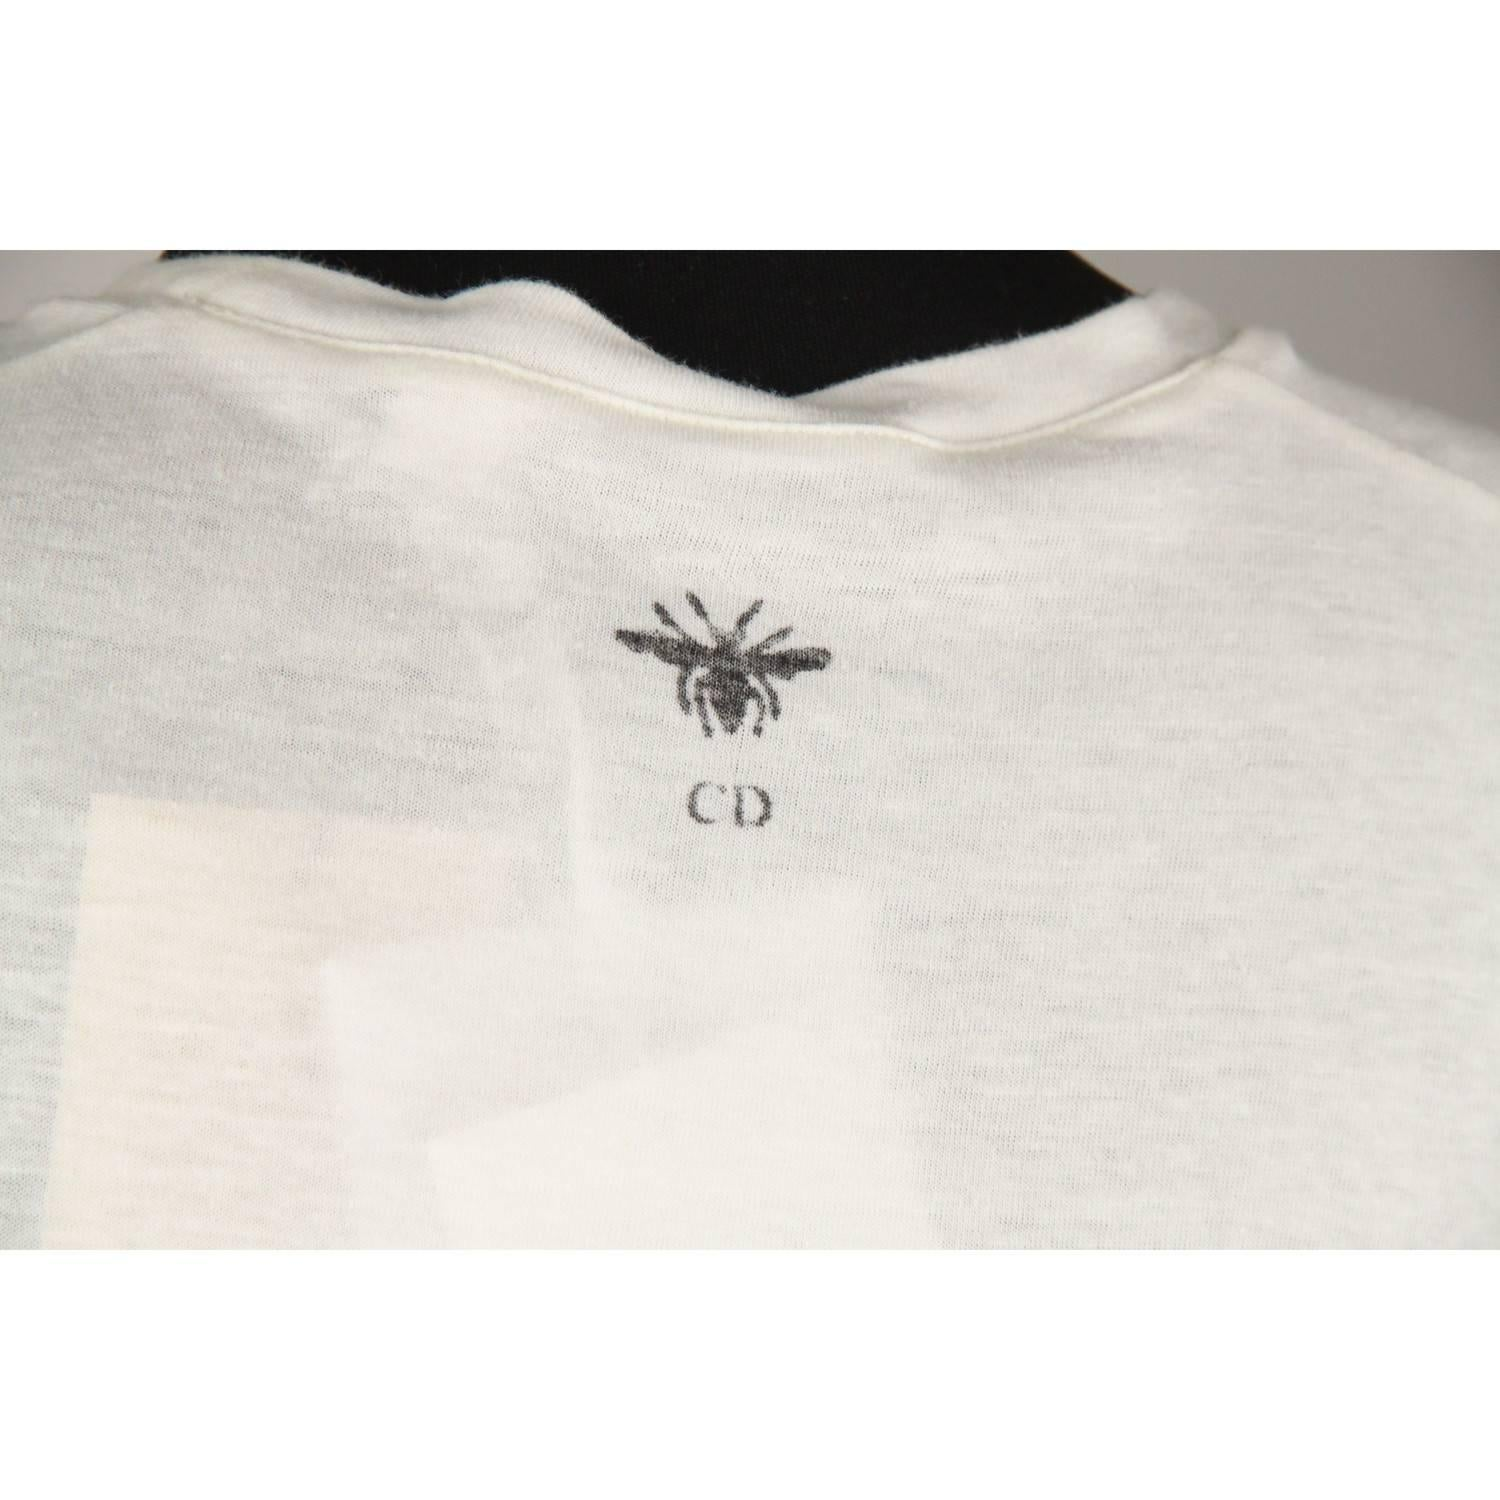 a60d8a5c CHRISTIAN DIOR White Cotton & Linen J'Adior 8 Tee Top T Shirt Size S